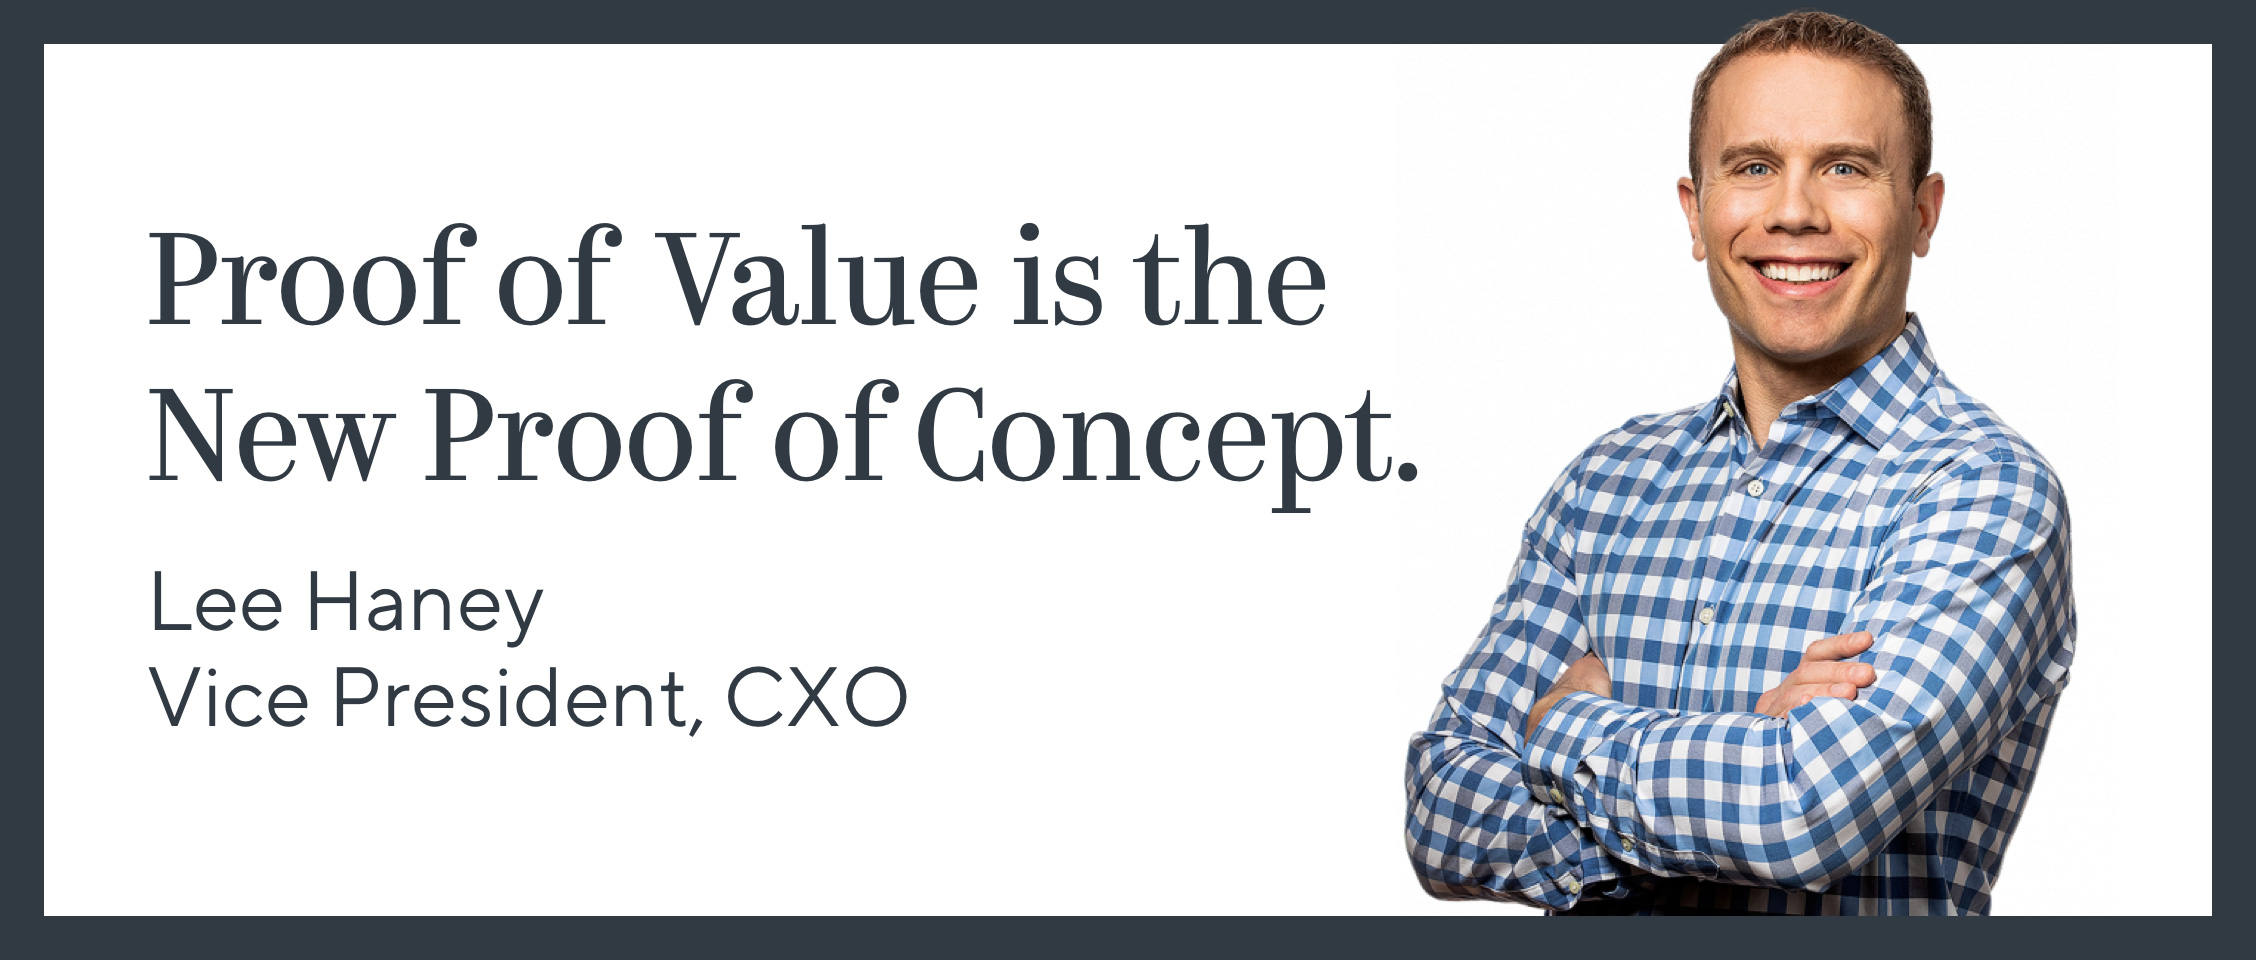 Proof of Value is the New Proof of Concept